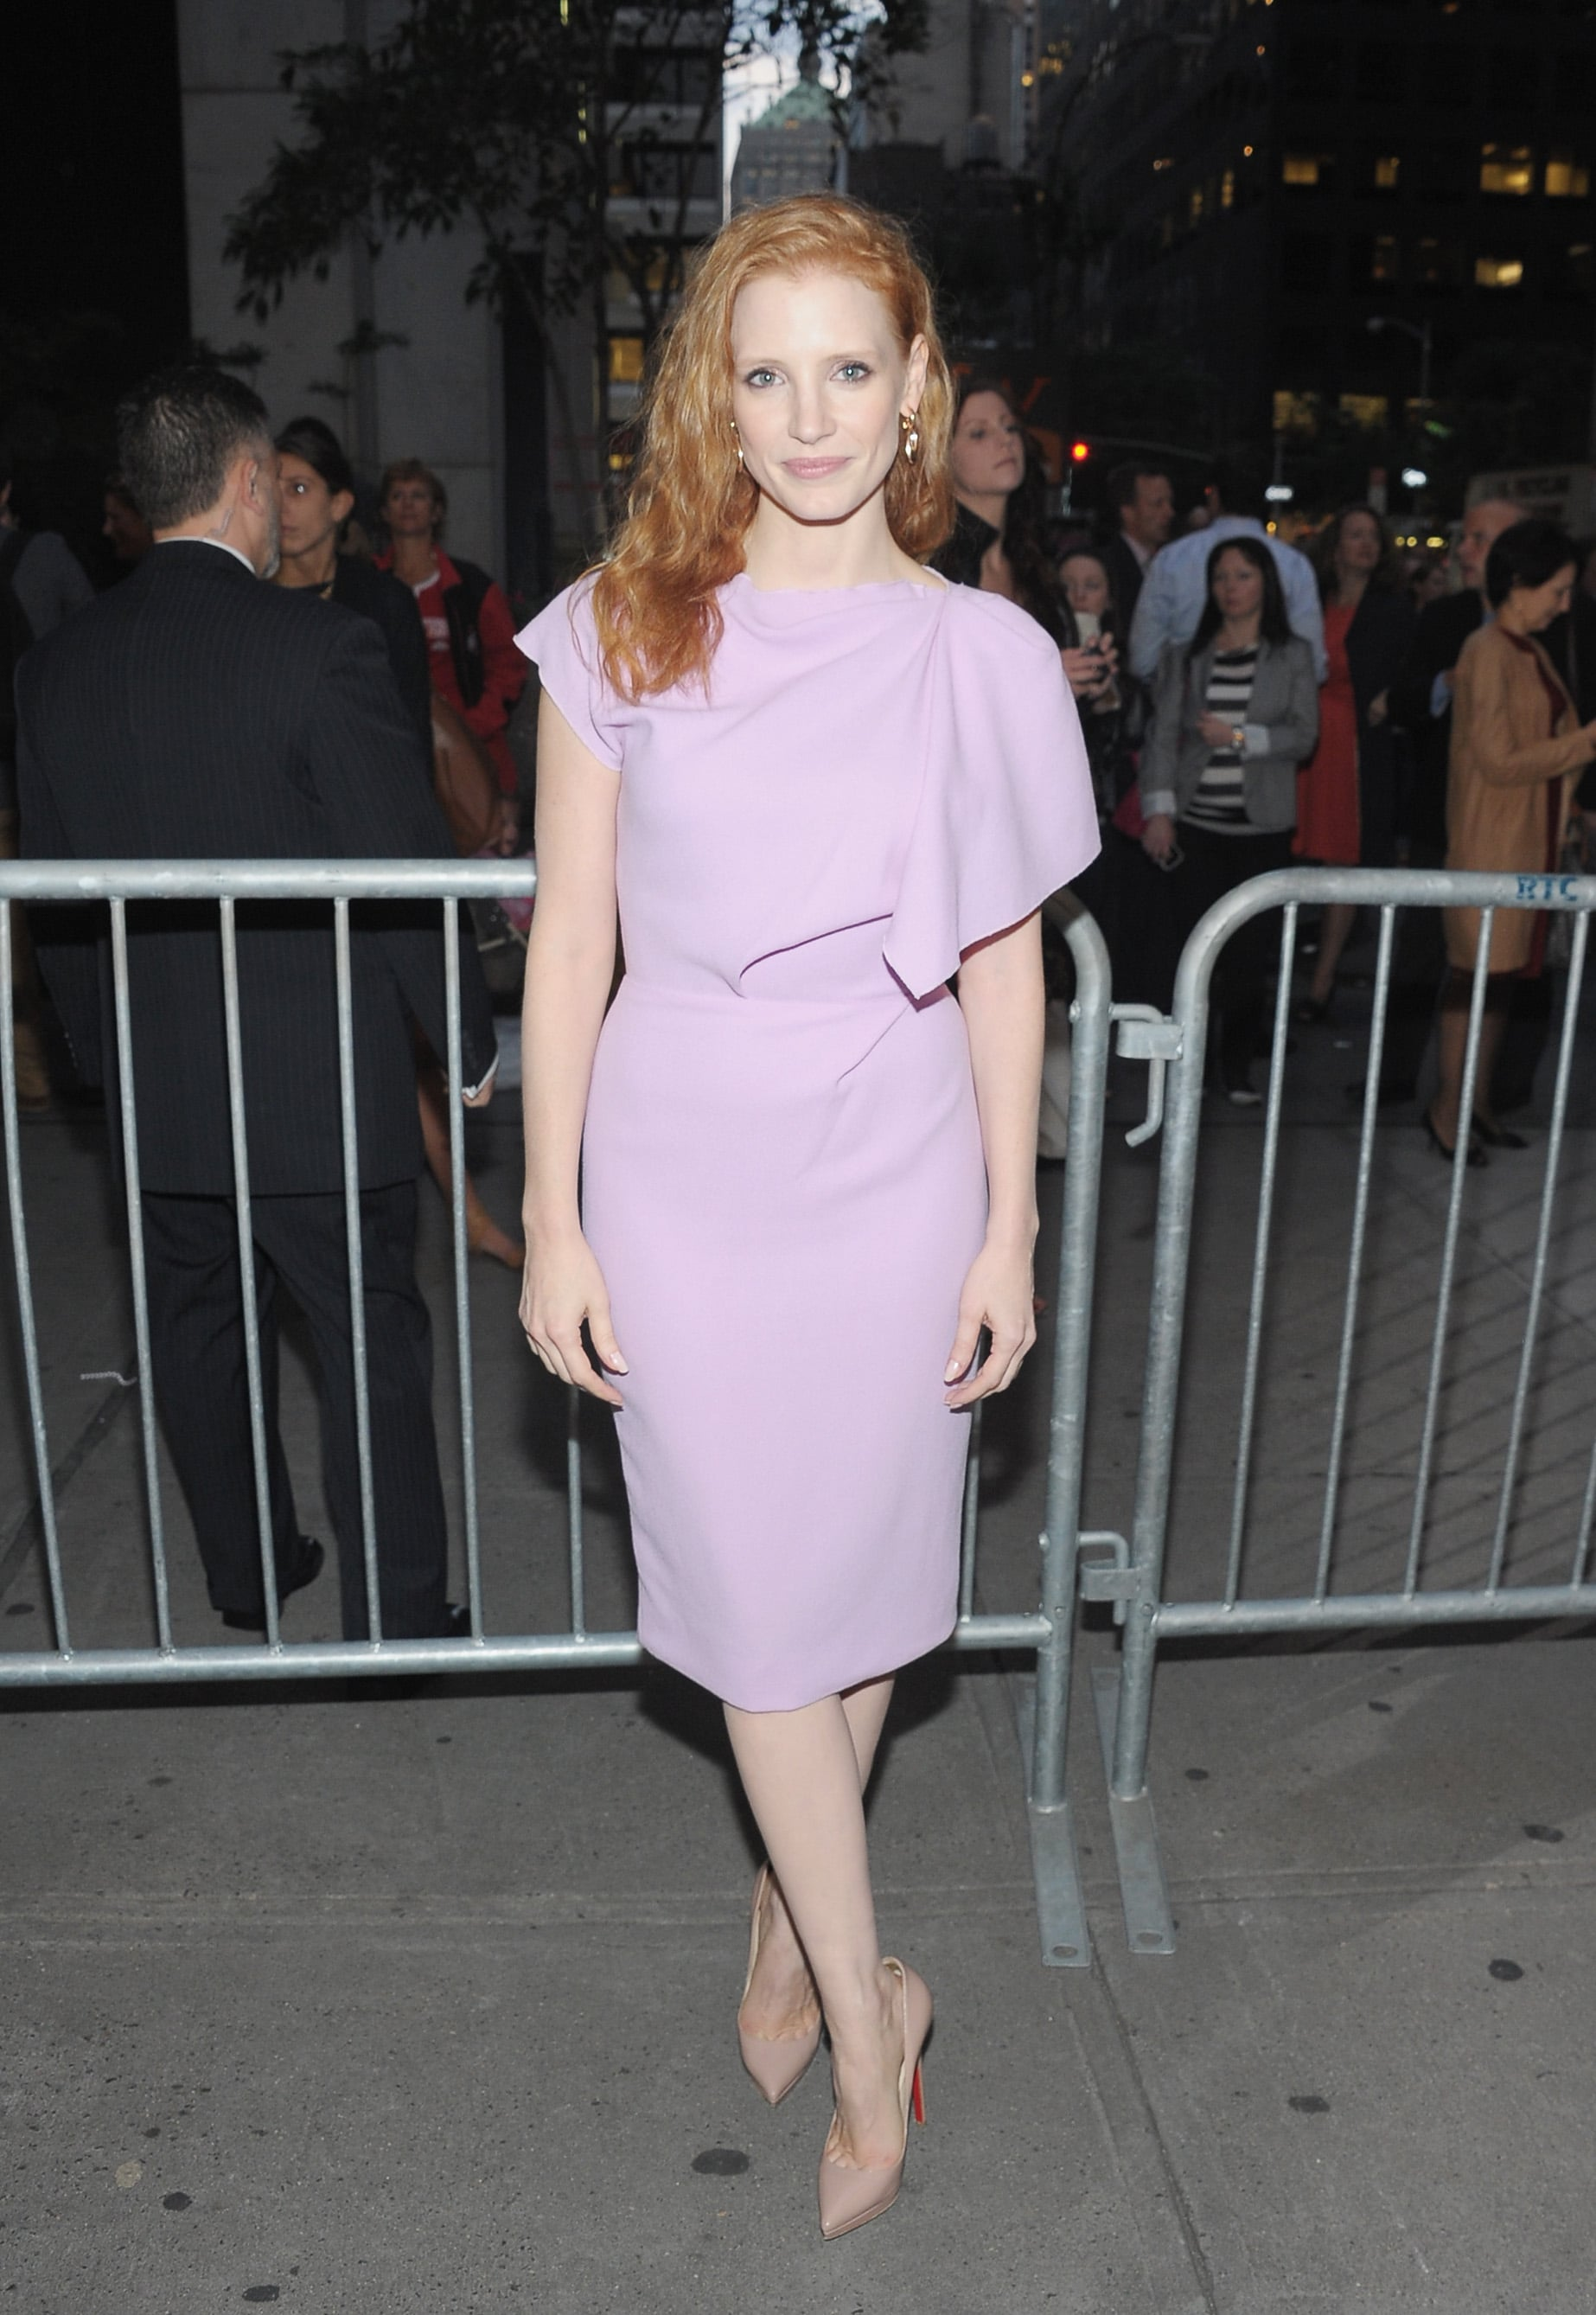 Jessica Chastain looked lovely in a violet dress.